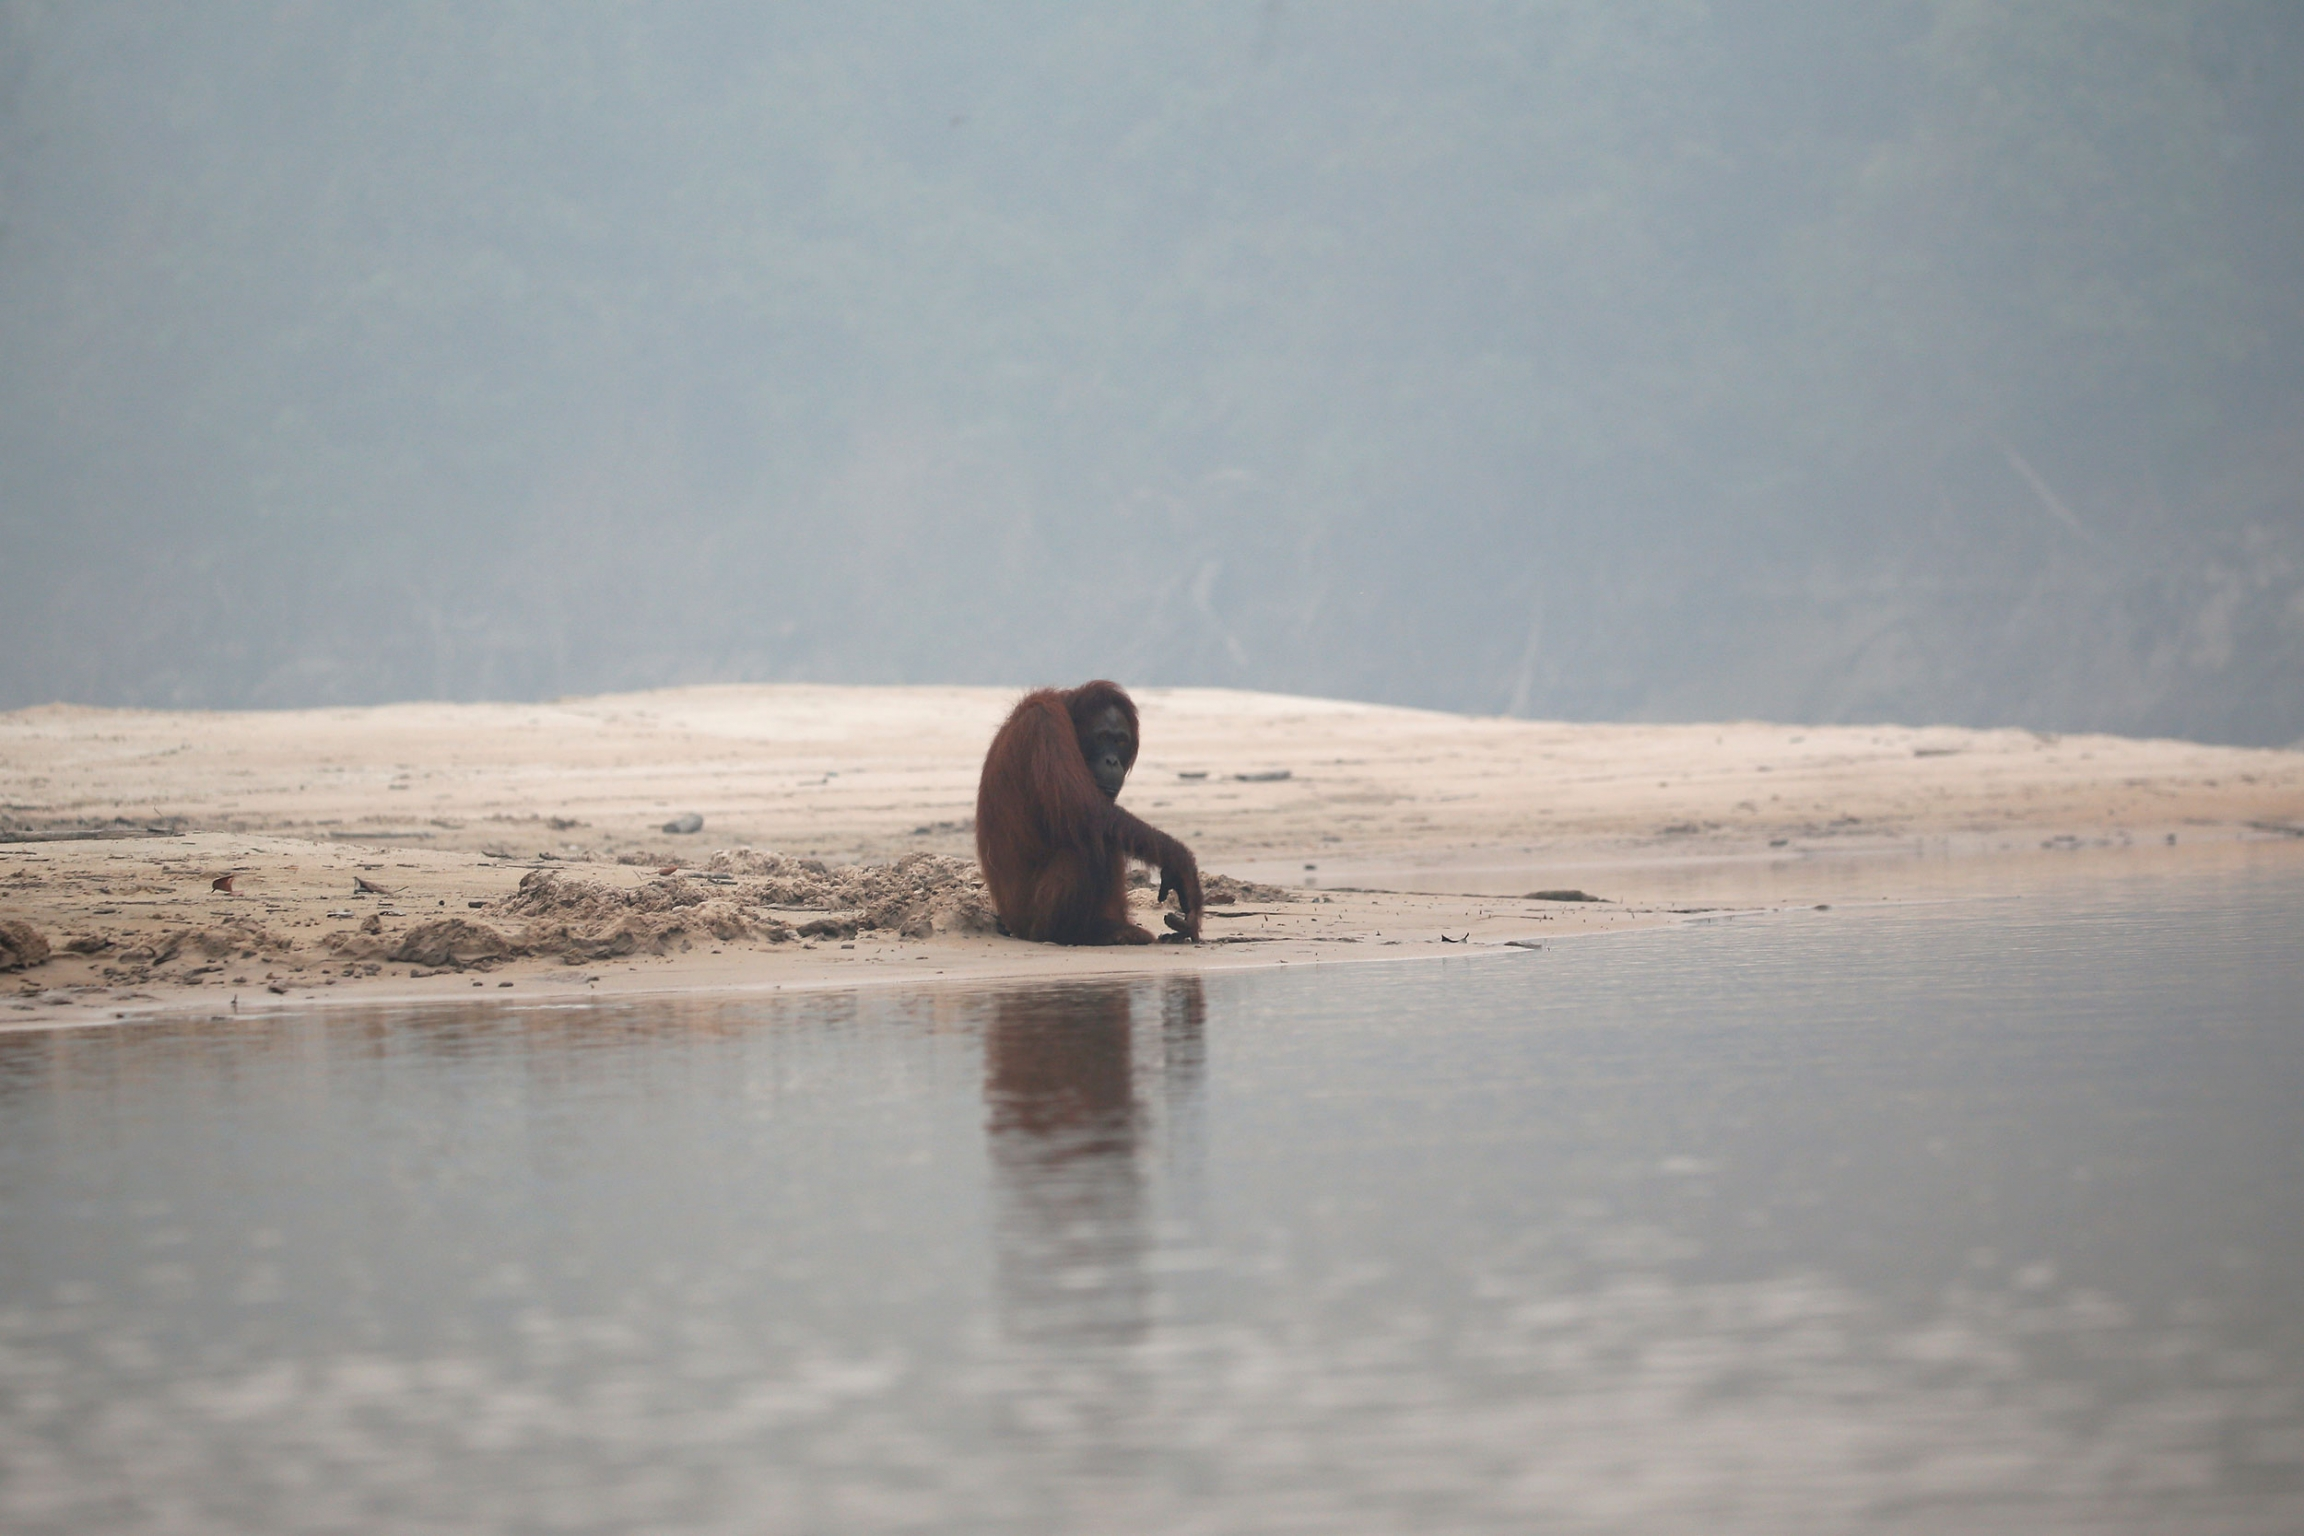 An orangutan is shown sitting on the edge of a beach with smoke clouding the background.